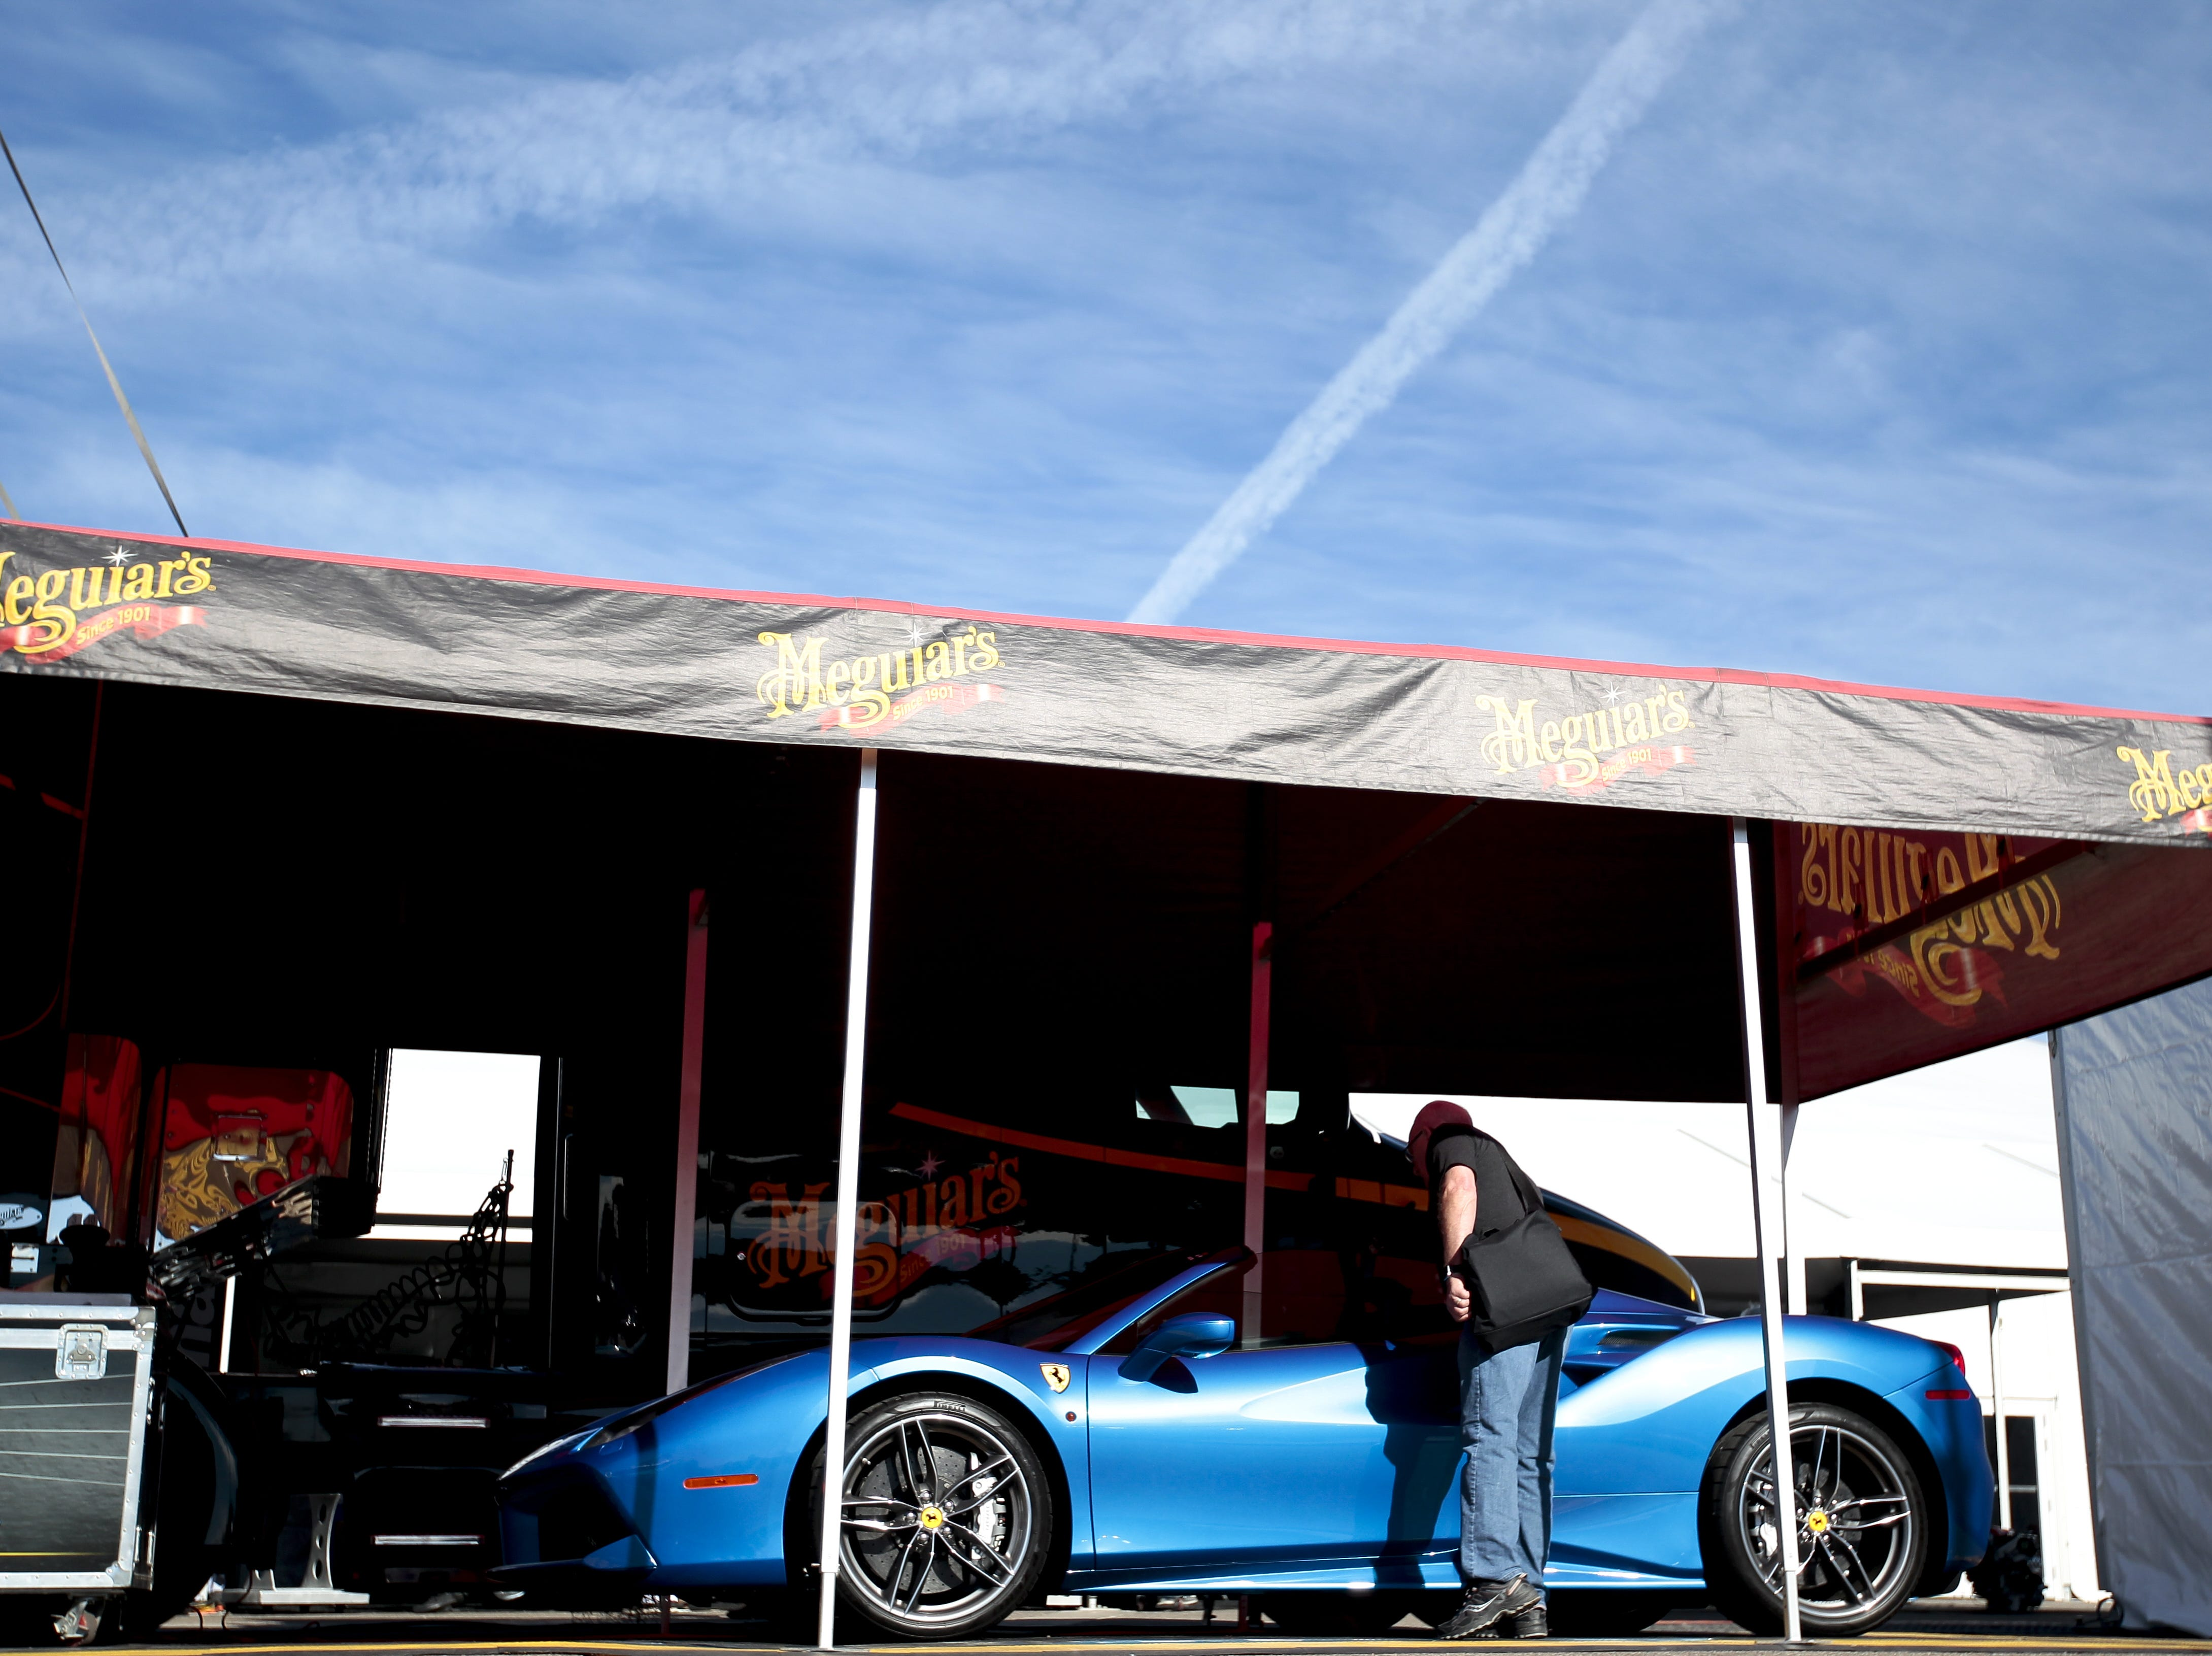 A man approaches a Ferrari 488 Spider on display at the Barrett-Jackson Car Auction on Jan. 12, the first day of the event.